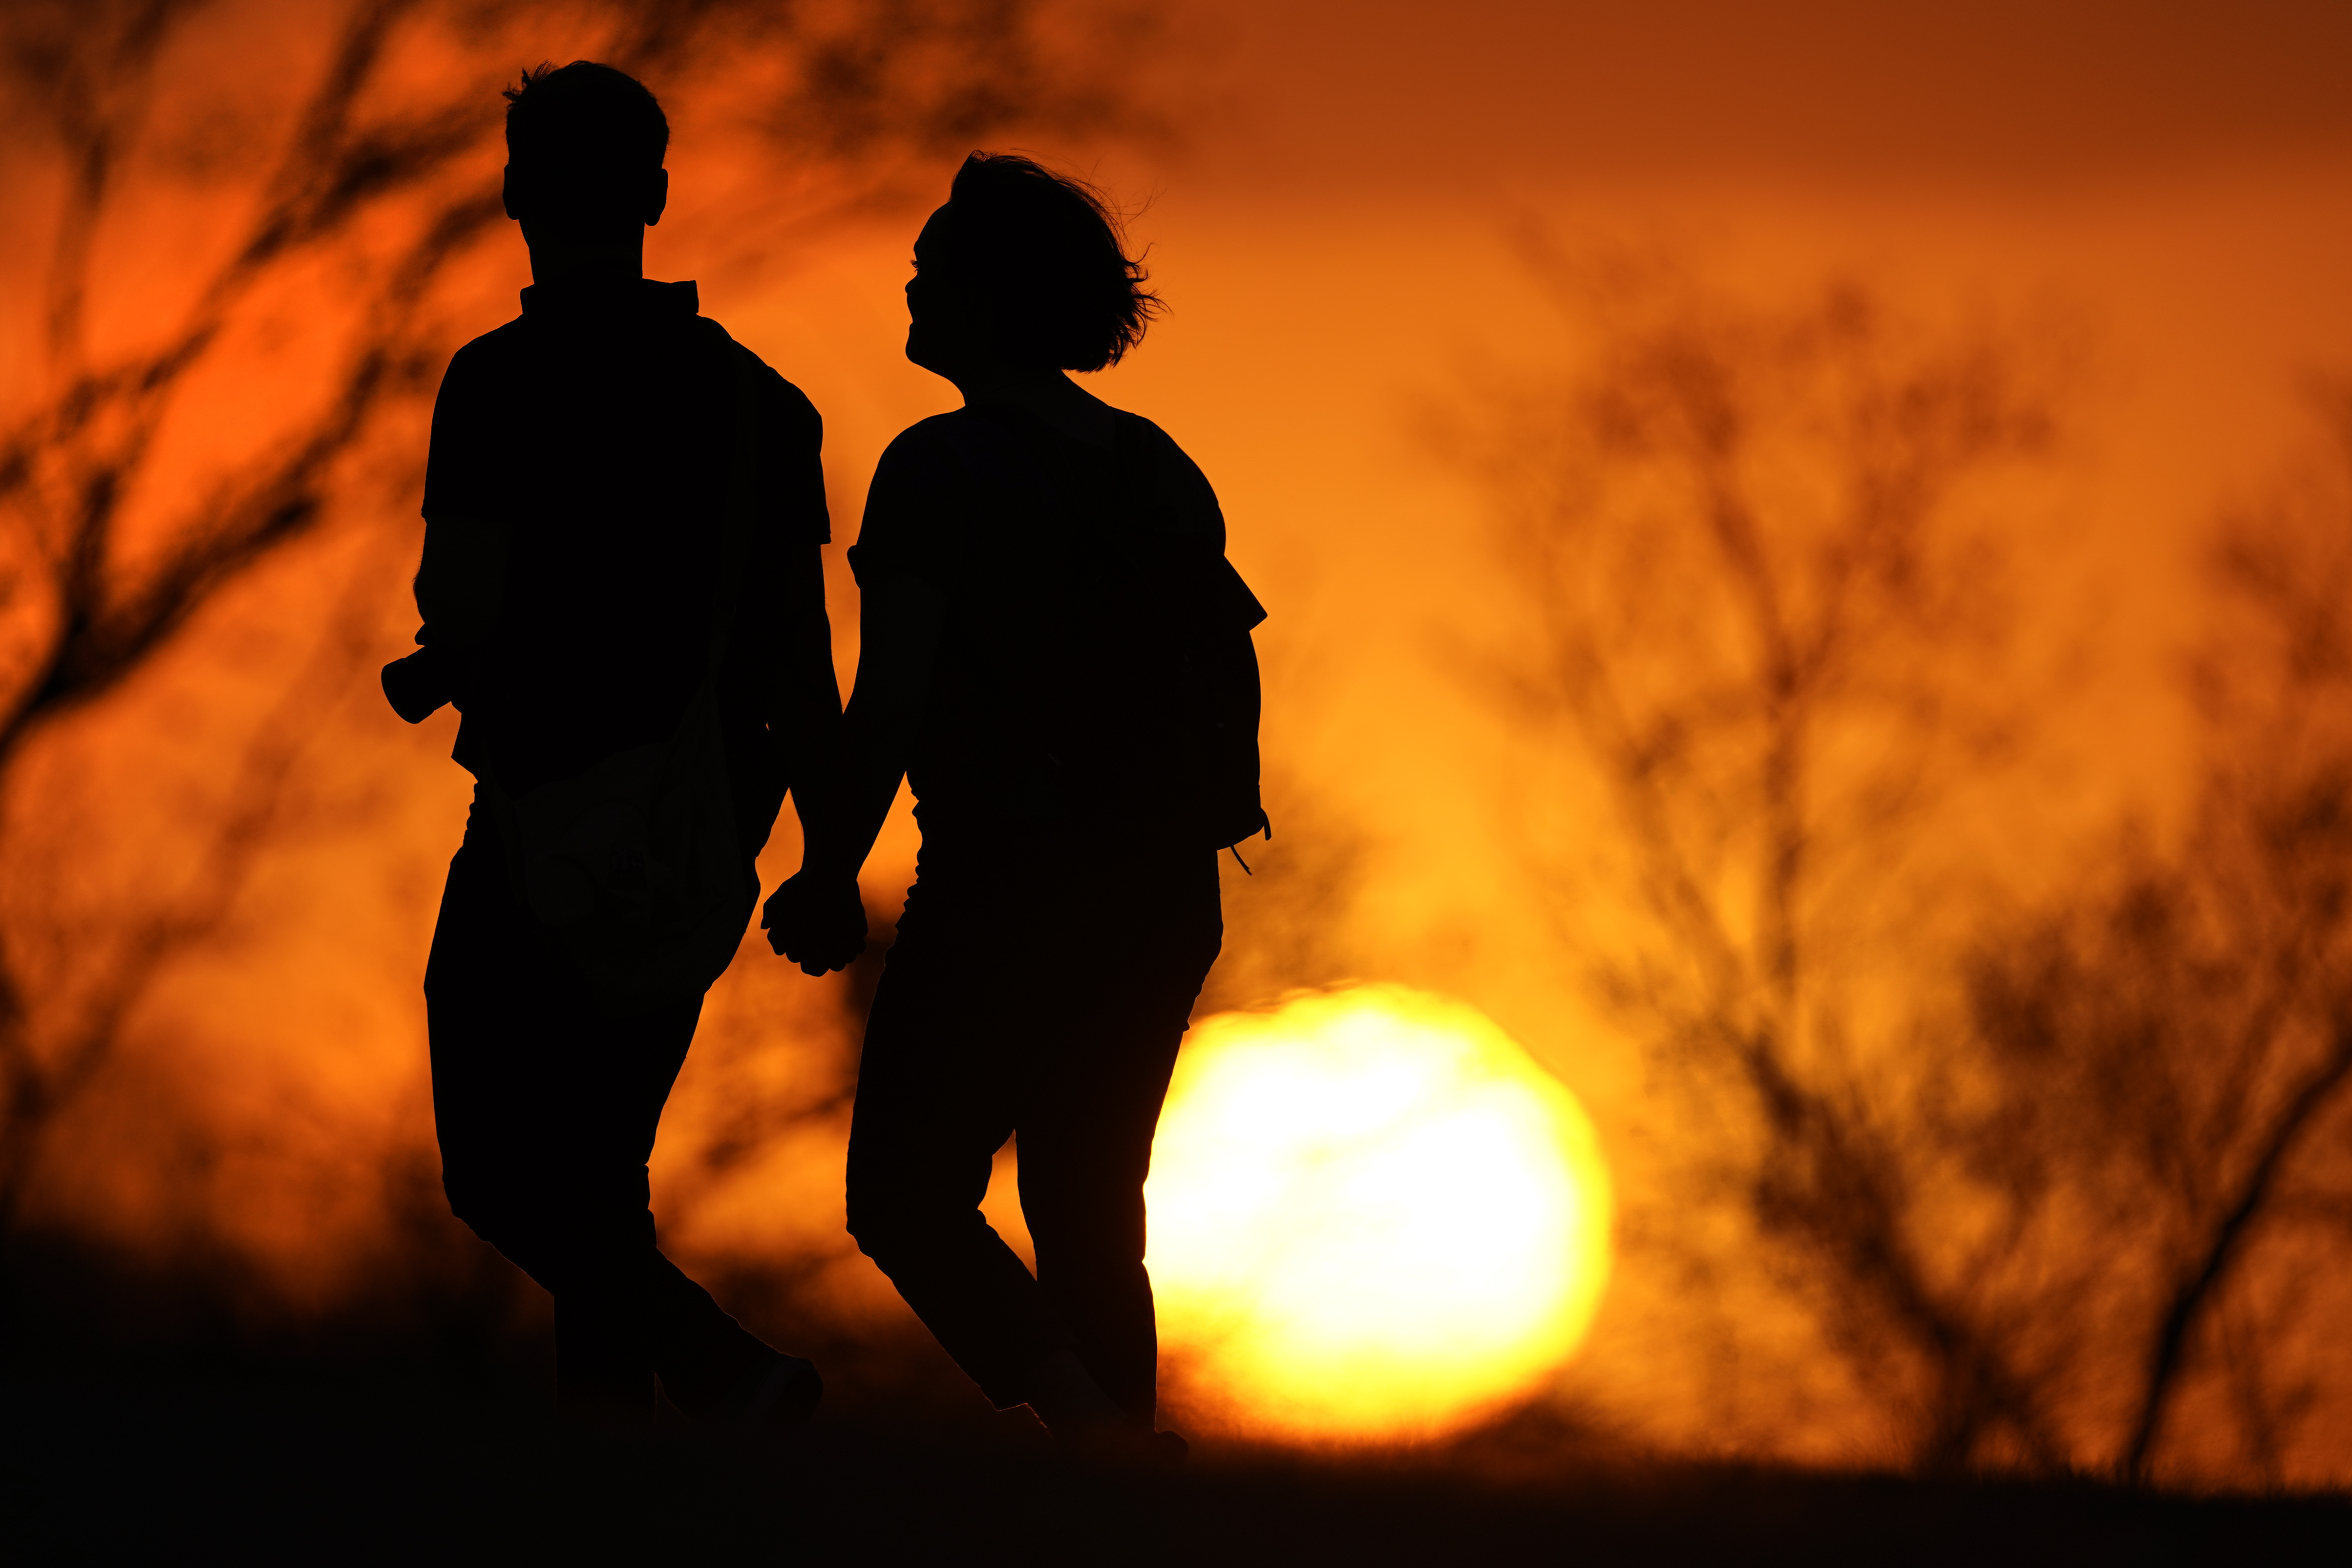 In this Wednesday, March 10, 2021 file photo, a couple walks through a park at sunset in Kansas City, Mo. According to a report released by the Centers for Disease Control and Prevention on Tuesday, July 20, 2021, U.S. life expectancy fell by a year and a half in 2020, the largest one-year decline since World War II. Worse, the decrease for both Black Americans and Hispanic Americans was a staggering three years.